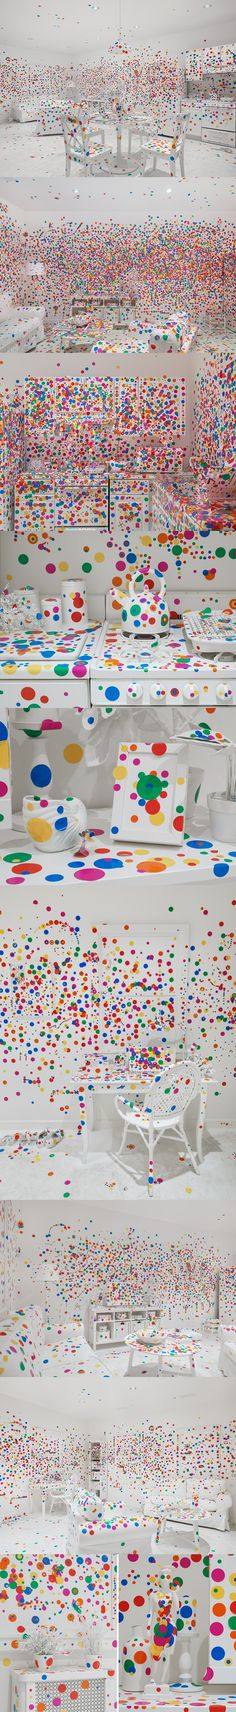 yayoi kusama - colorful dot-covered obliteration room to new york